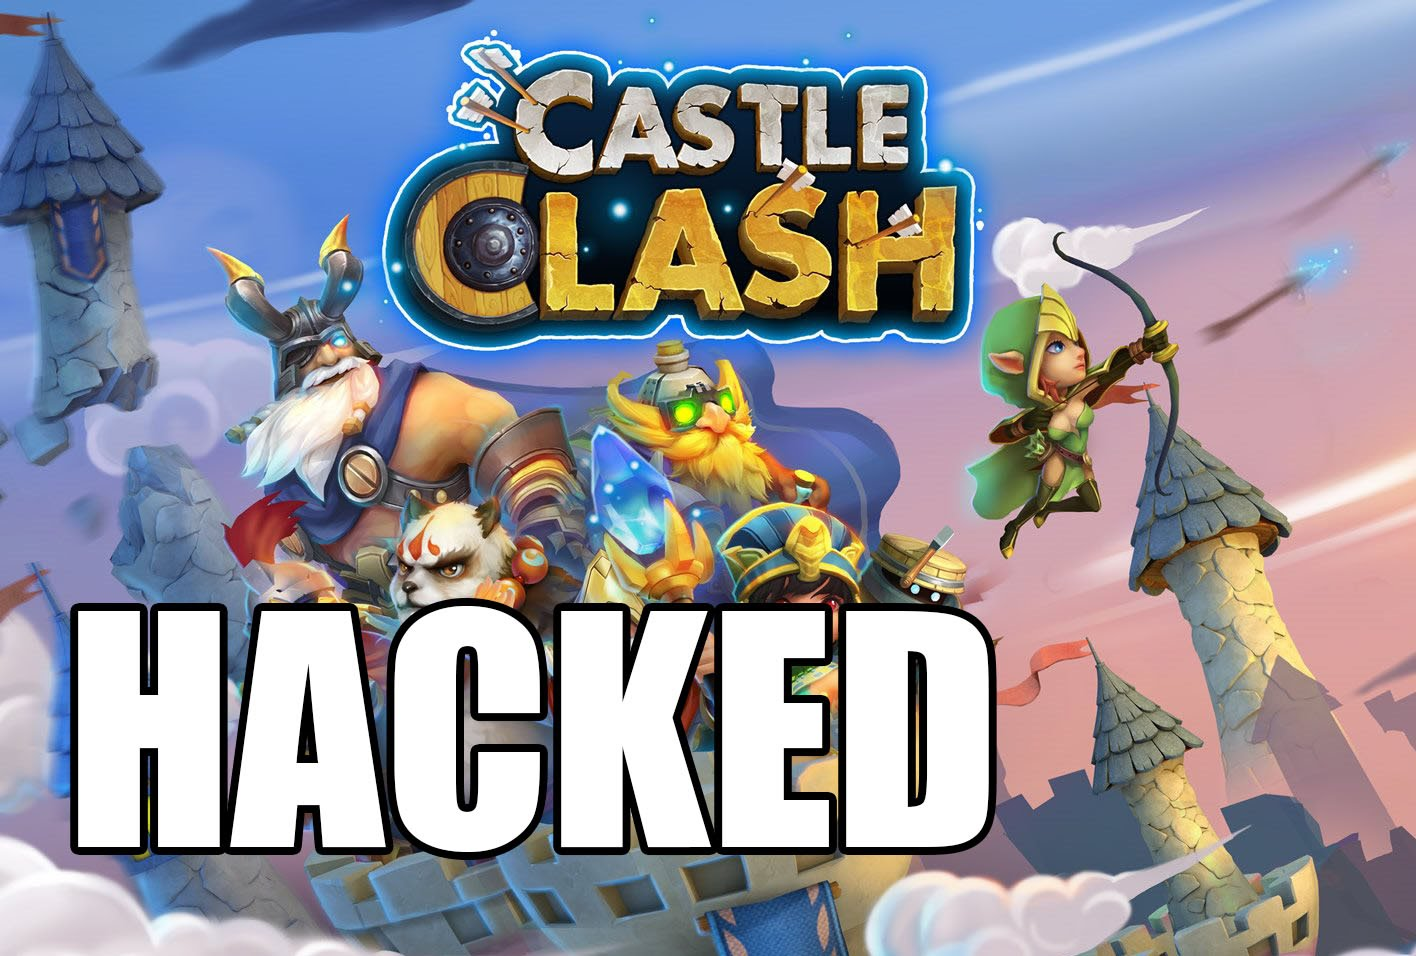 FROM BOOMHACKS.COM CASTLE CLASH | GET Gems and Golds FOR UNLIMITED RESOURCES